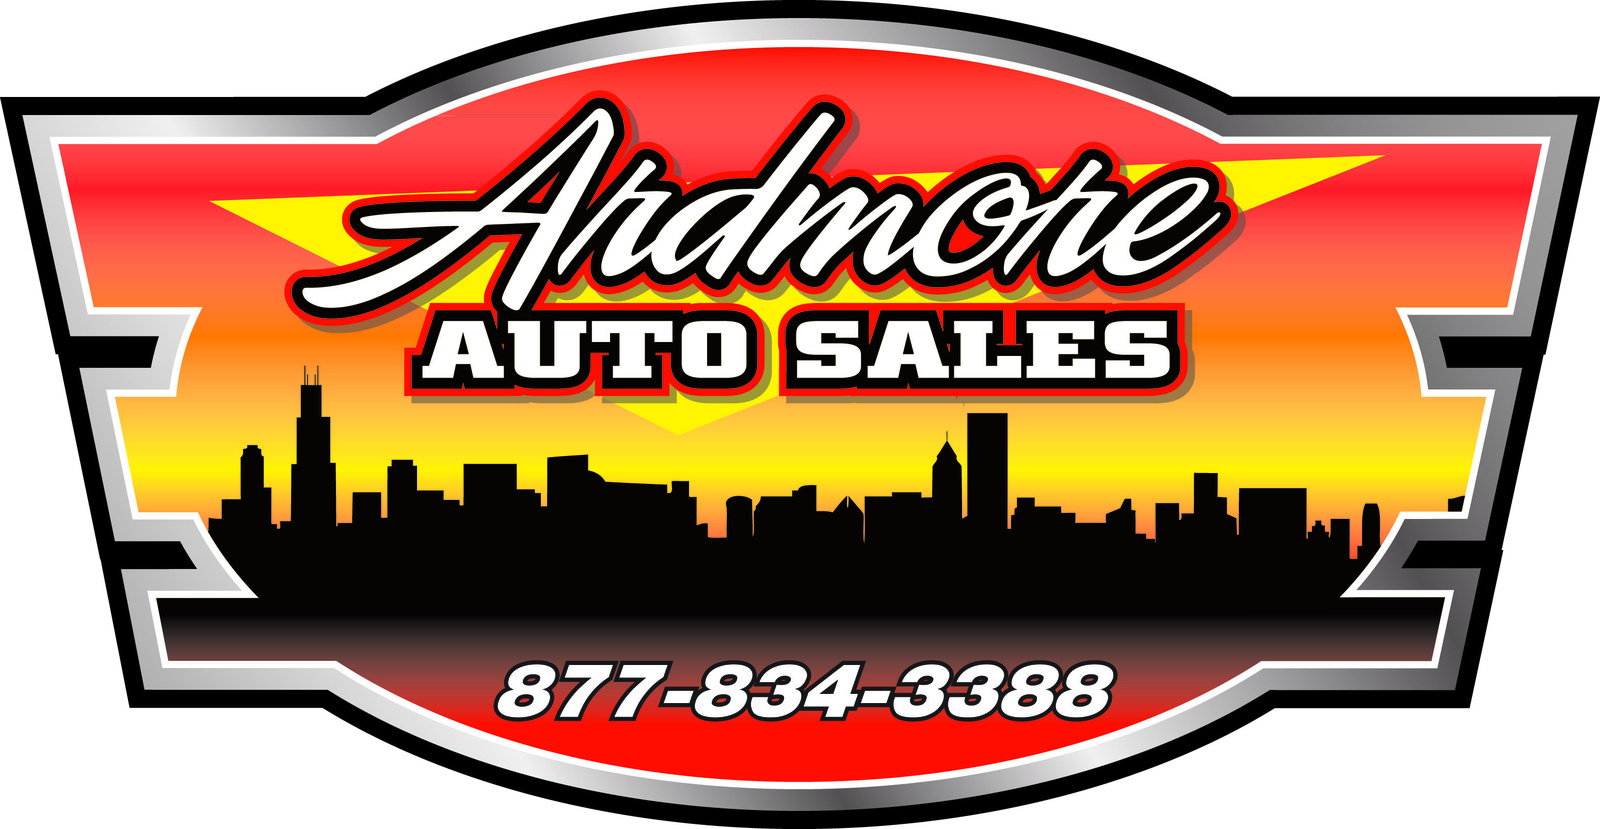 Ardmore Auto Sales Inc. - West Chicago, IL: Read Consumer reviews, Browse Used and New Cars for Sale